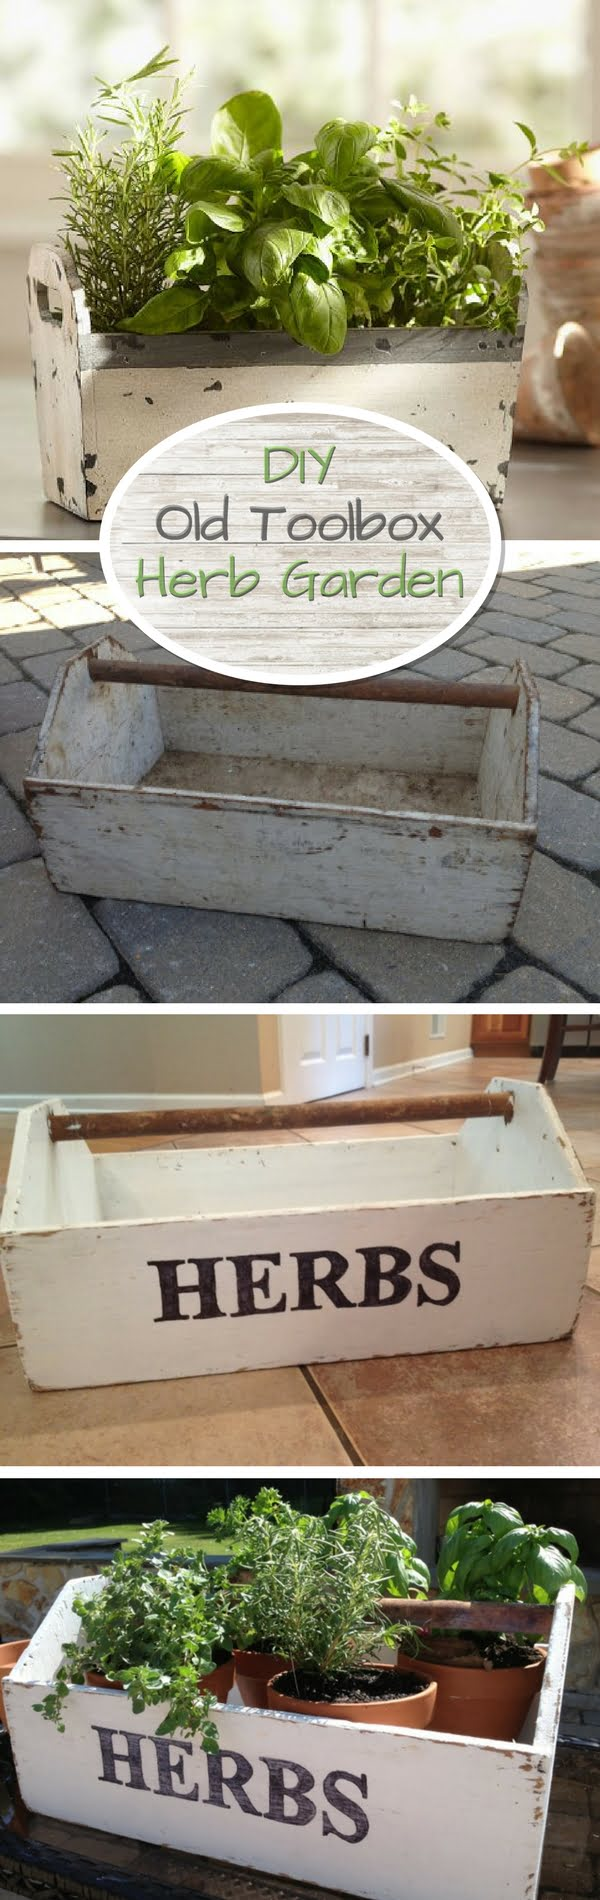 How to make a DIY herb garden from an old toolbox